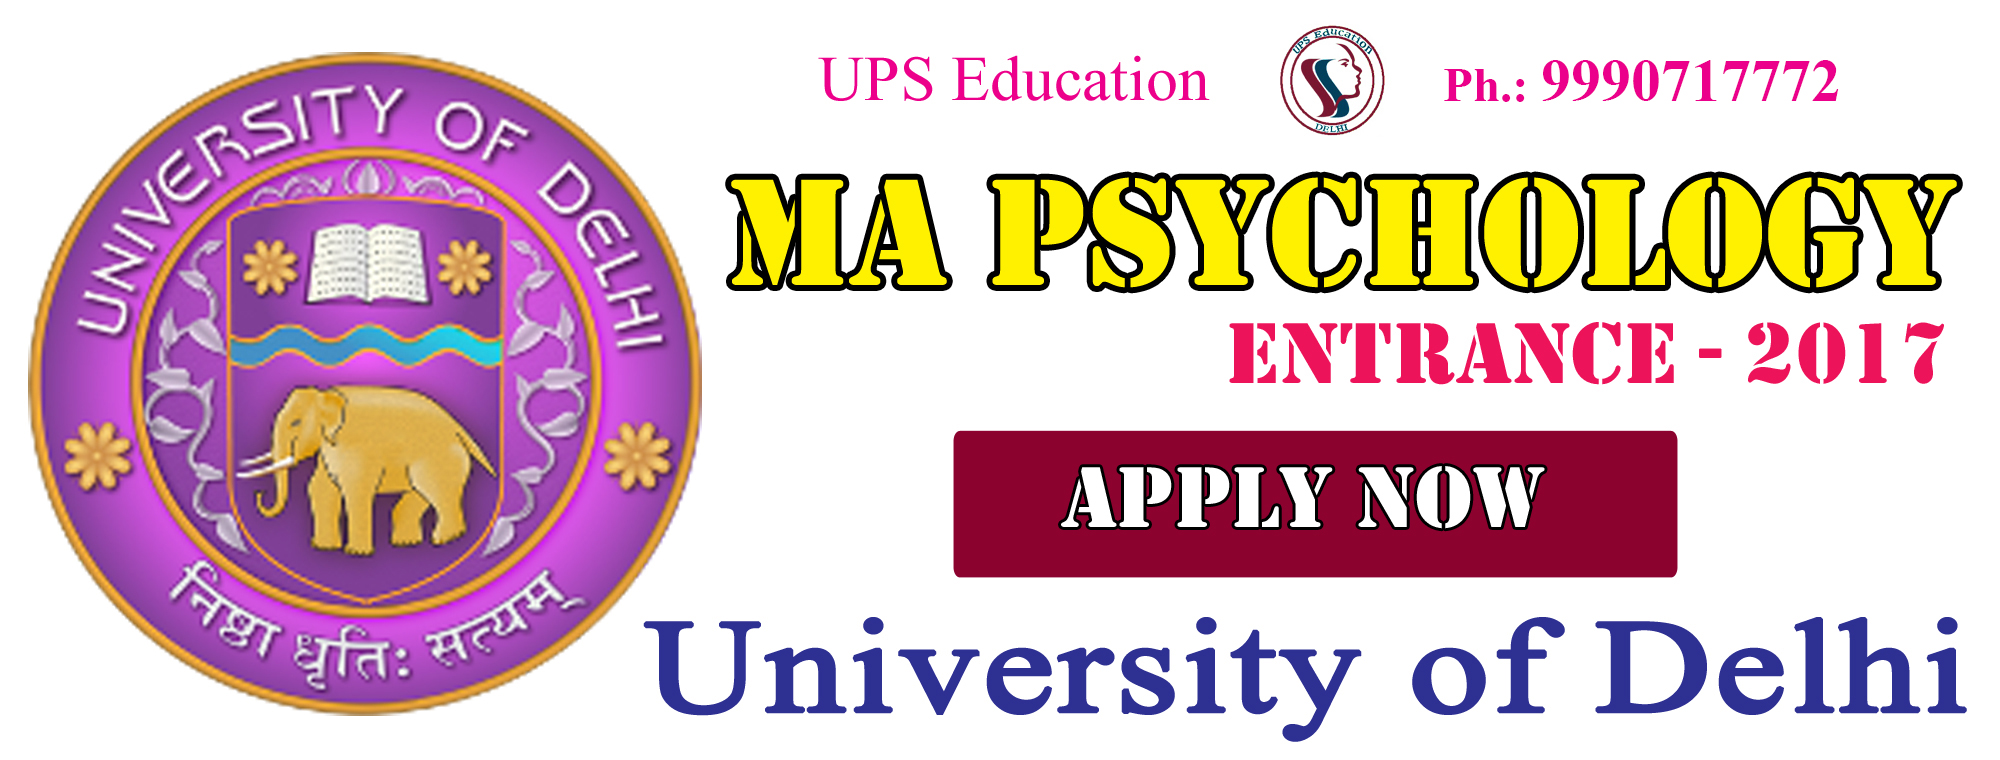 MA Psychology Entrance 2017 - Delhi University